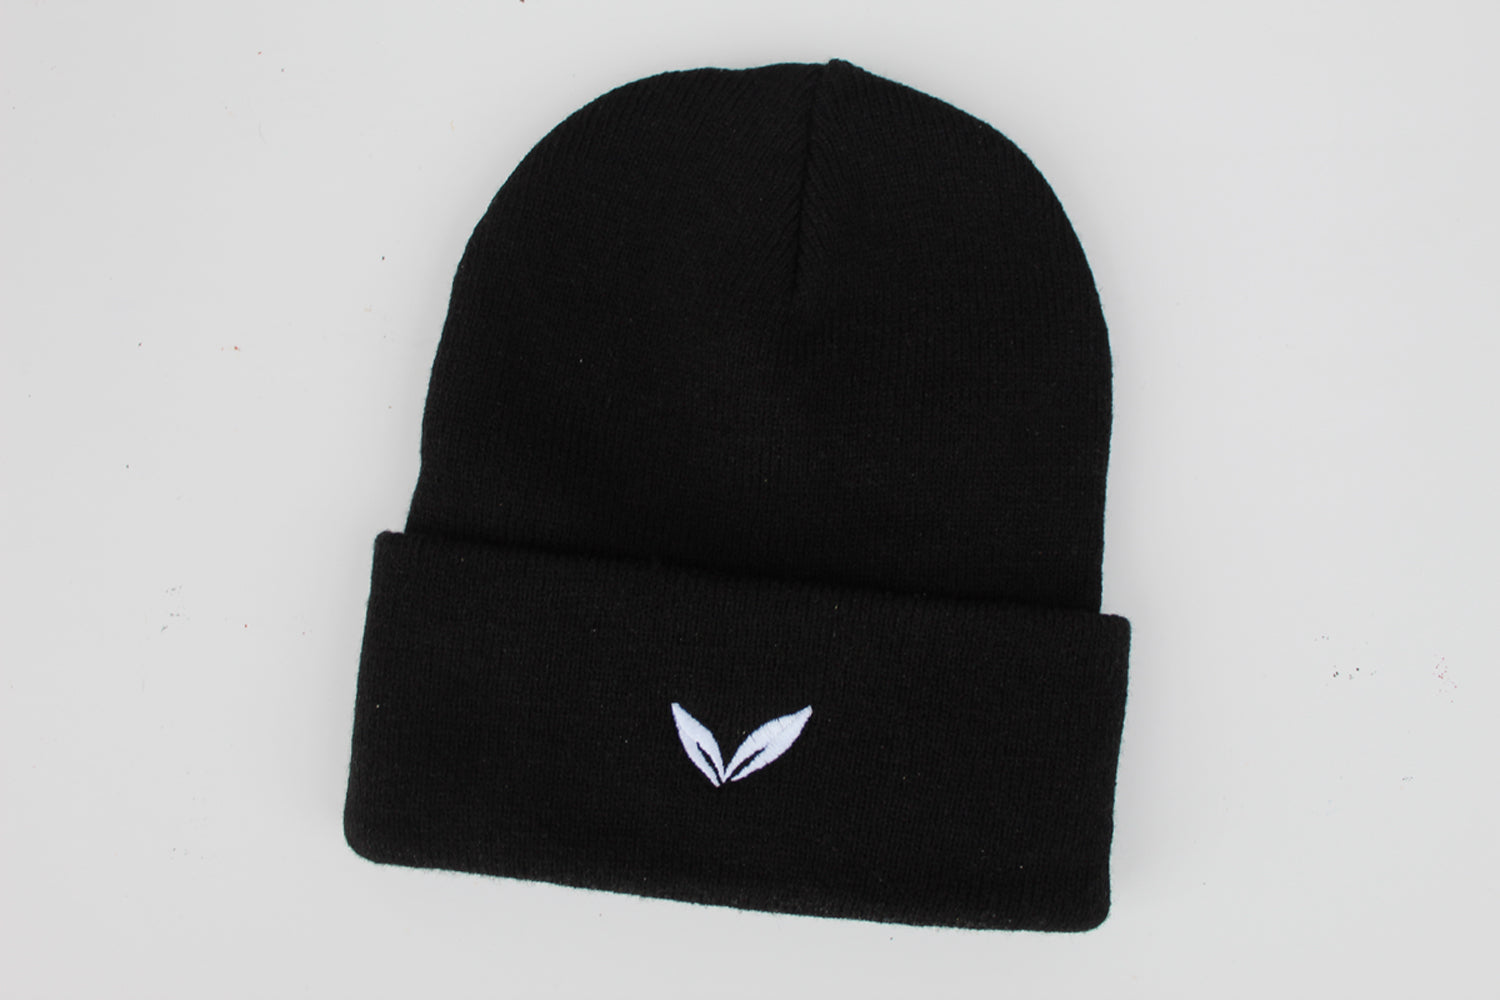 Vegan Beanie by VEGAGOOZ   (One size / Unisex)